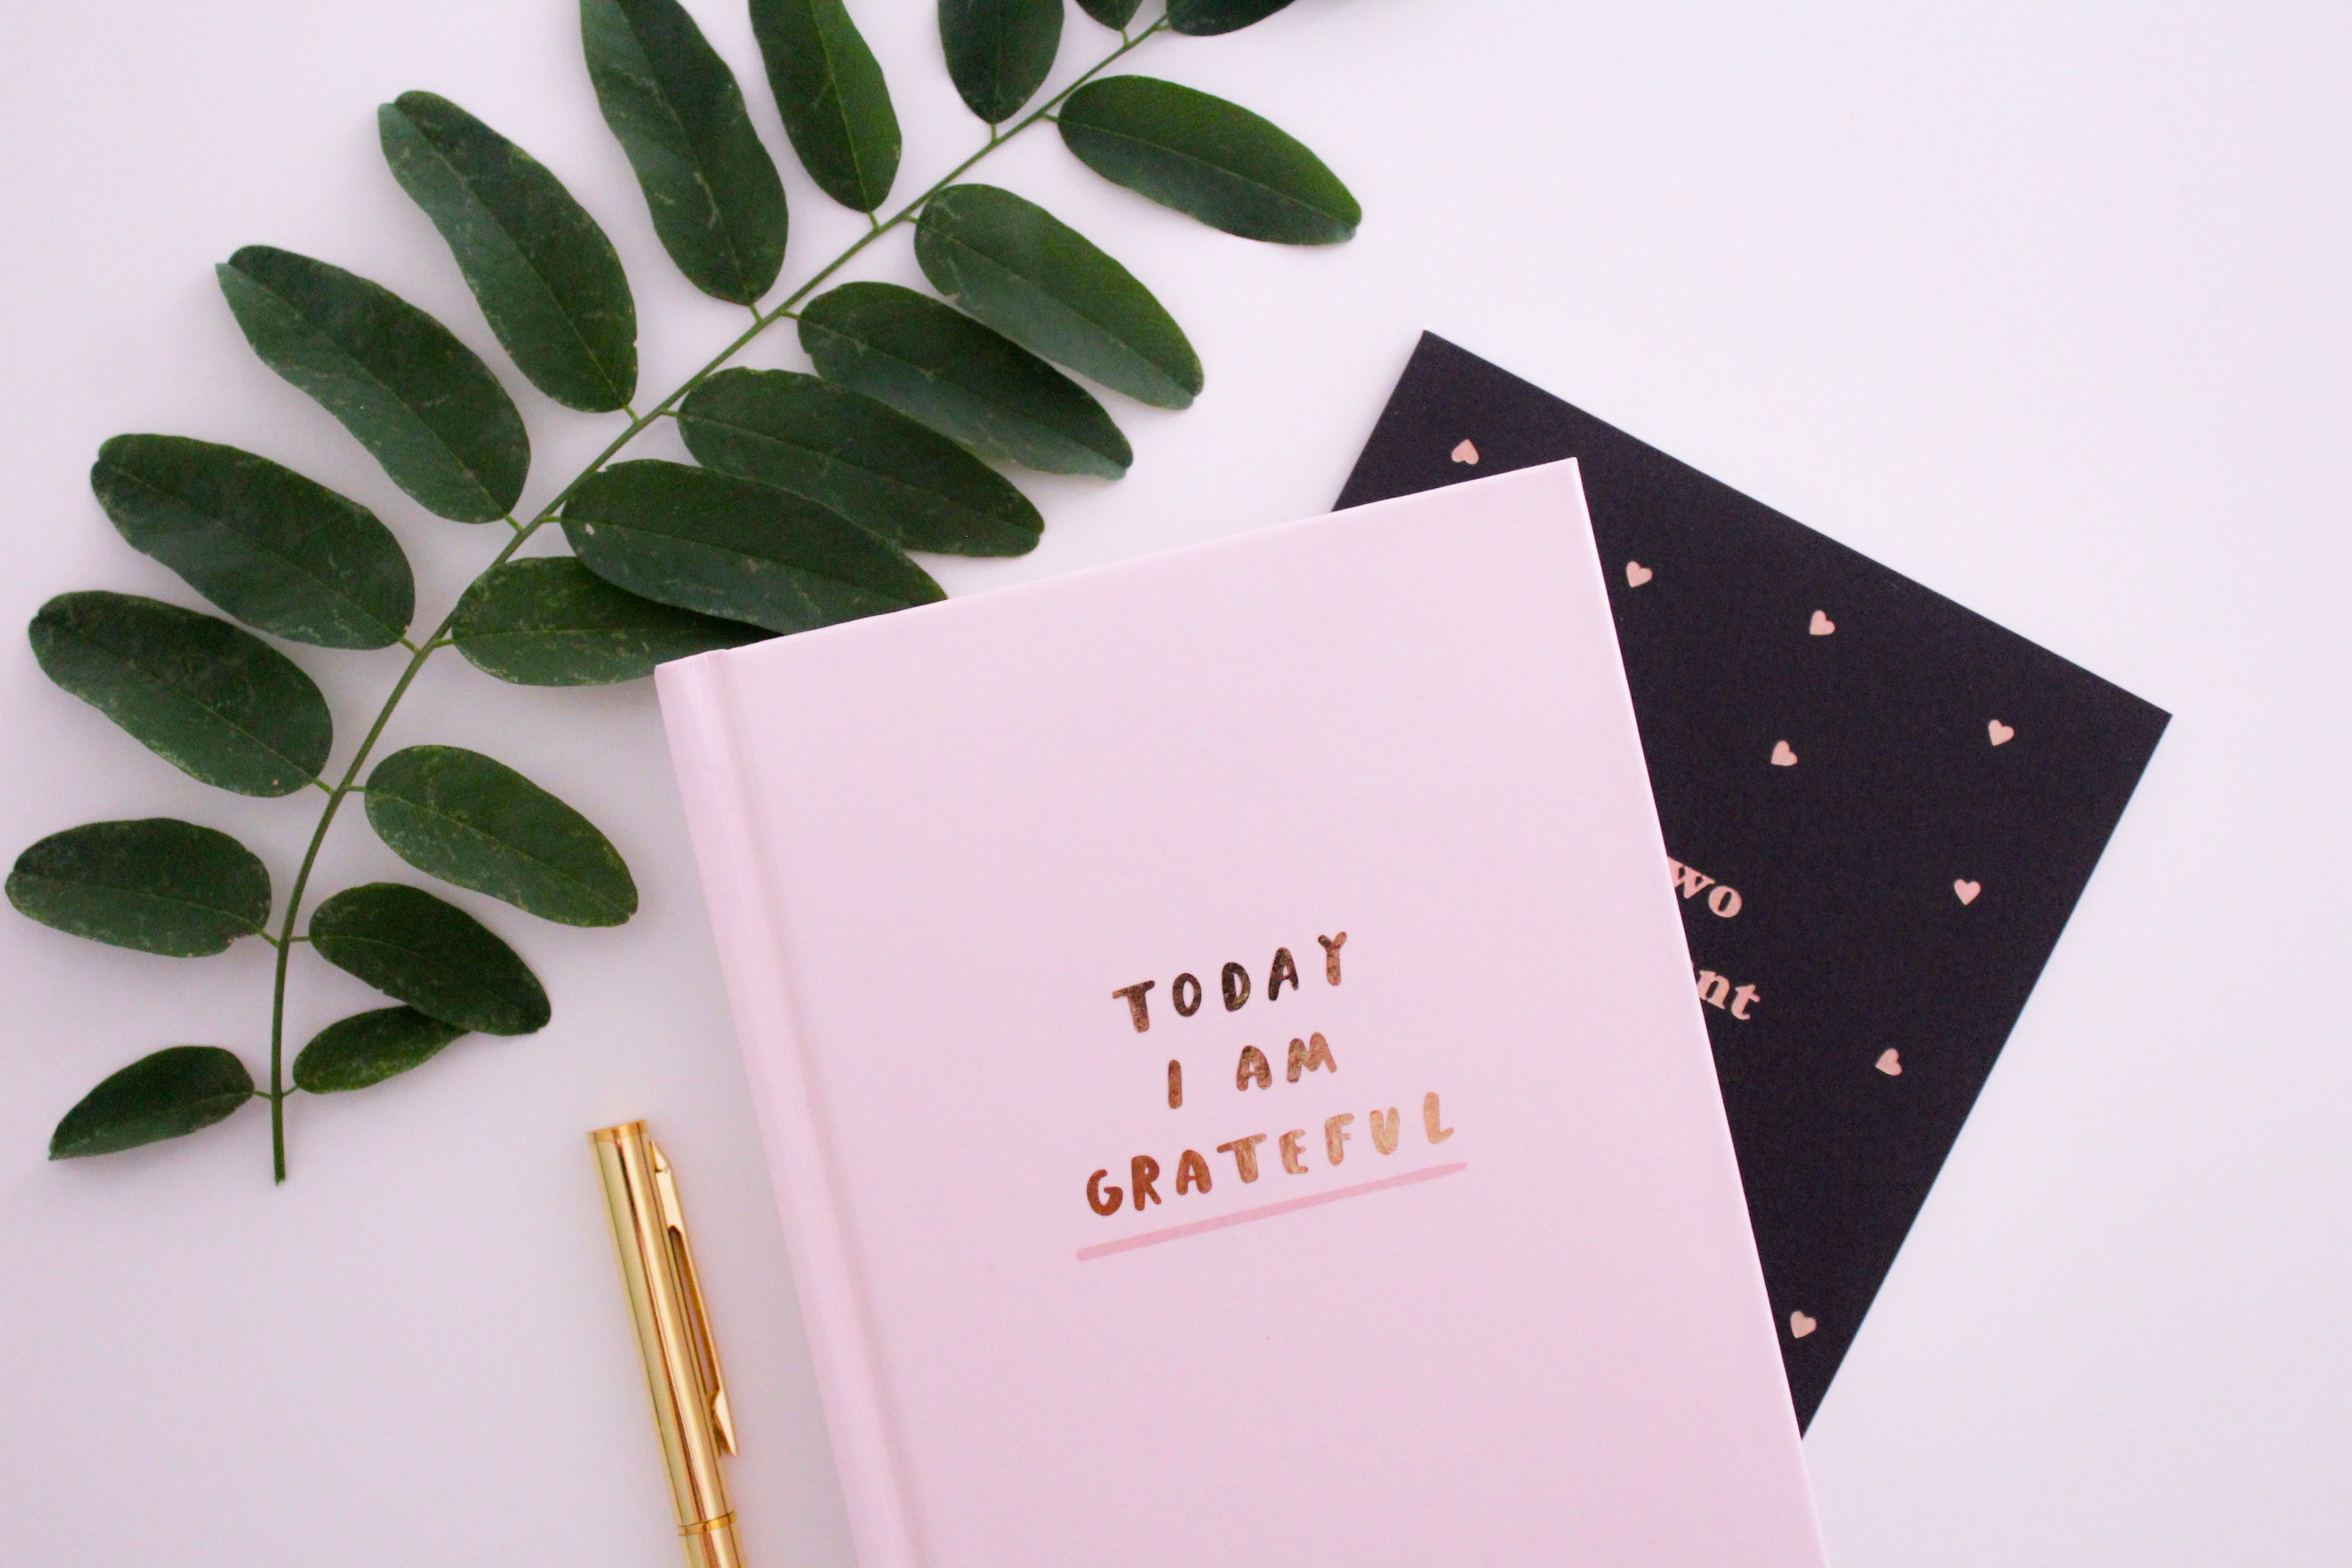 The Art and Grace of a Gratitude Journal